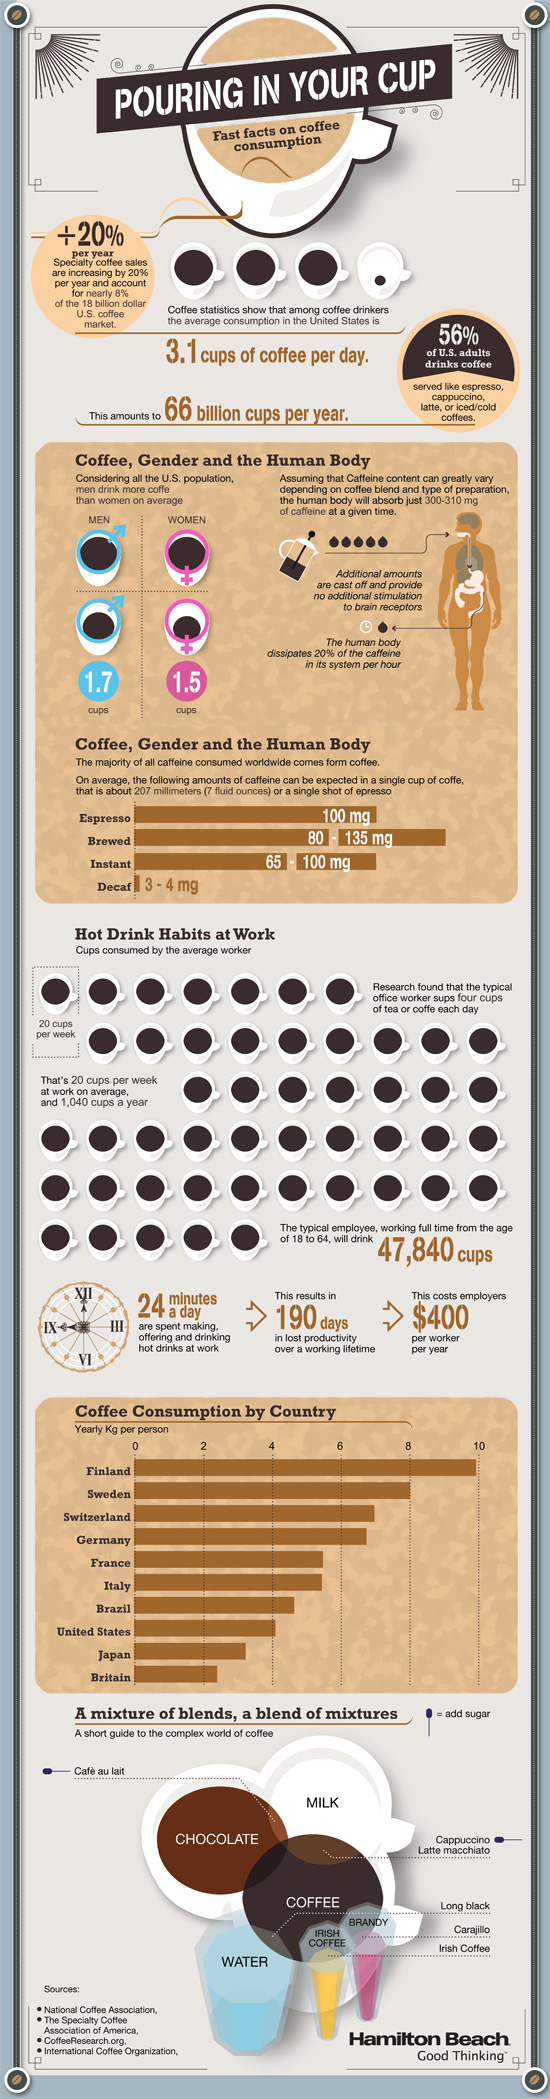 Coffee Facts and Statistics